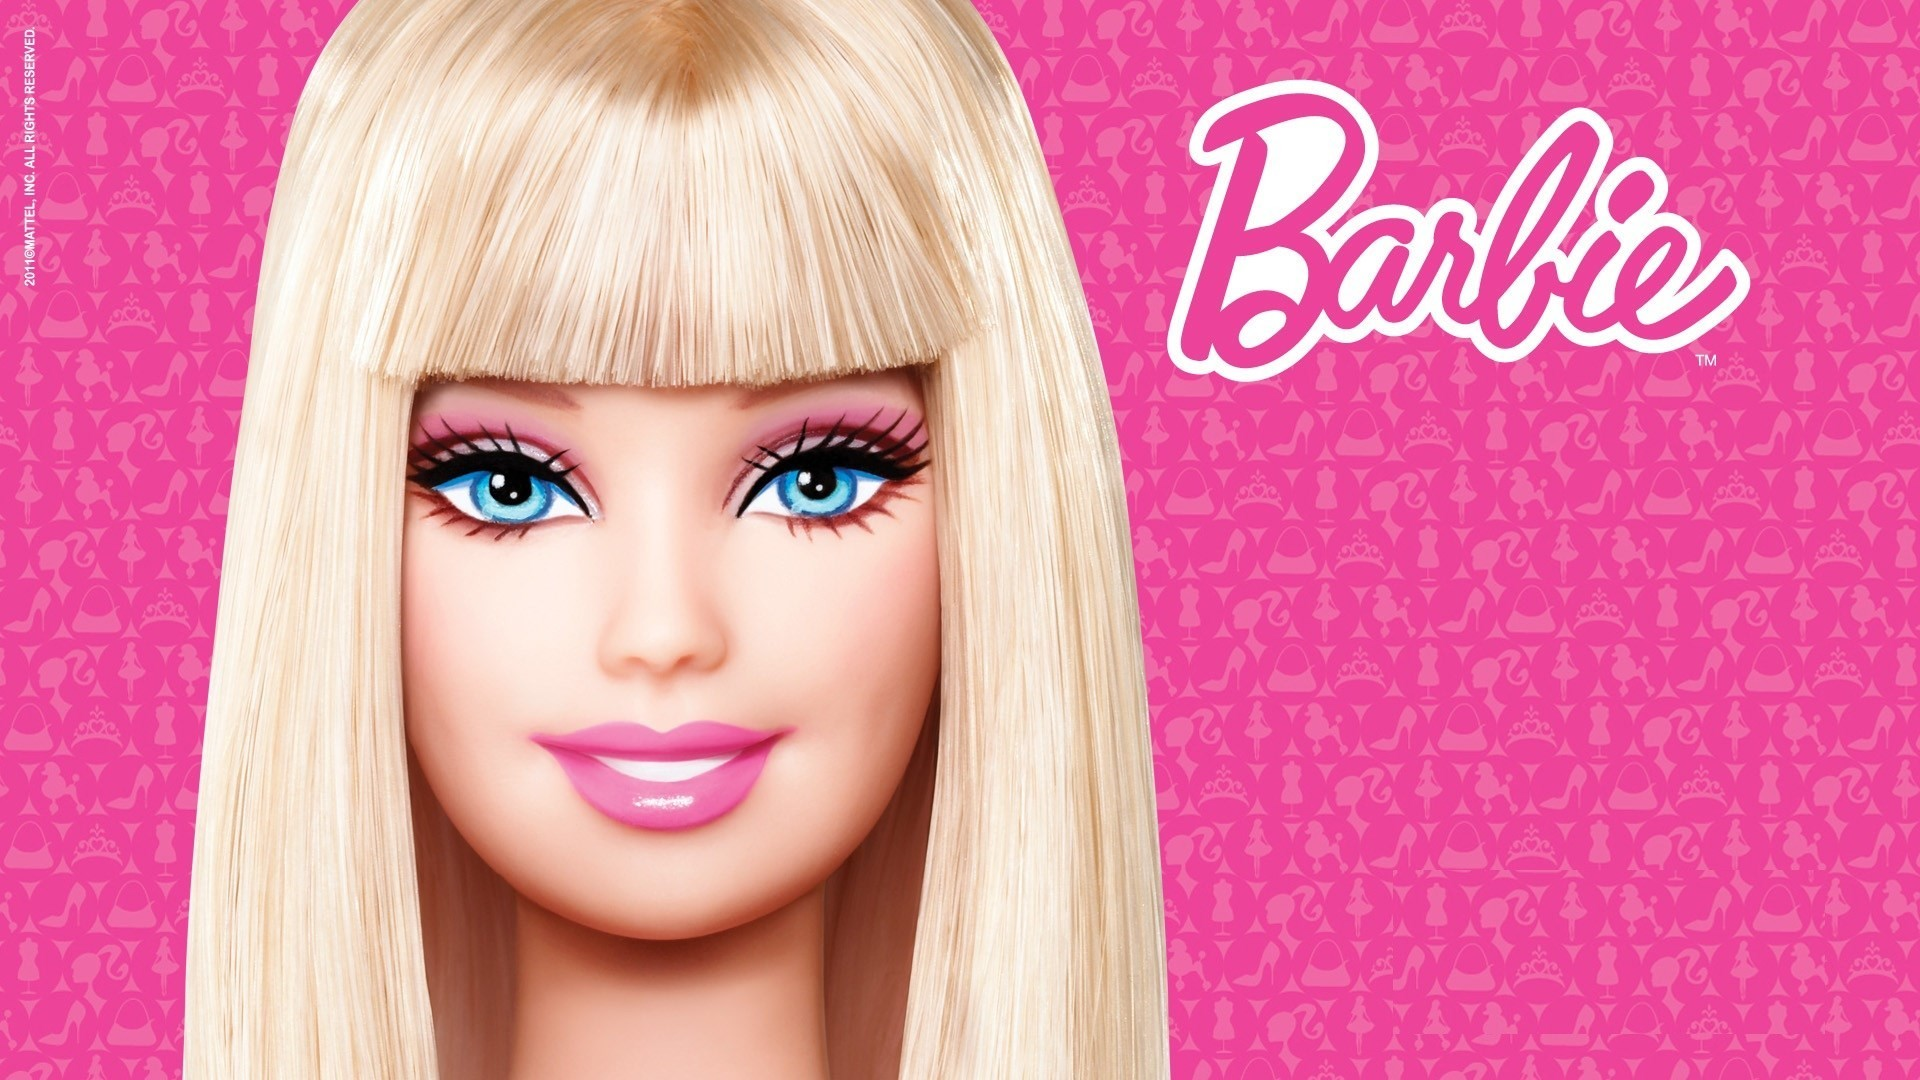 Barbie wallpaper 2018 - Barbie pictures download free ...